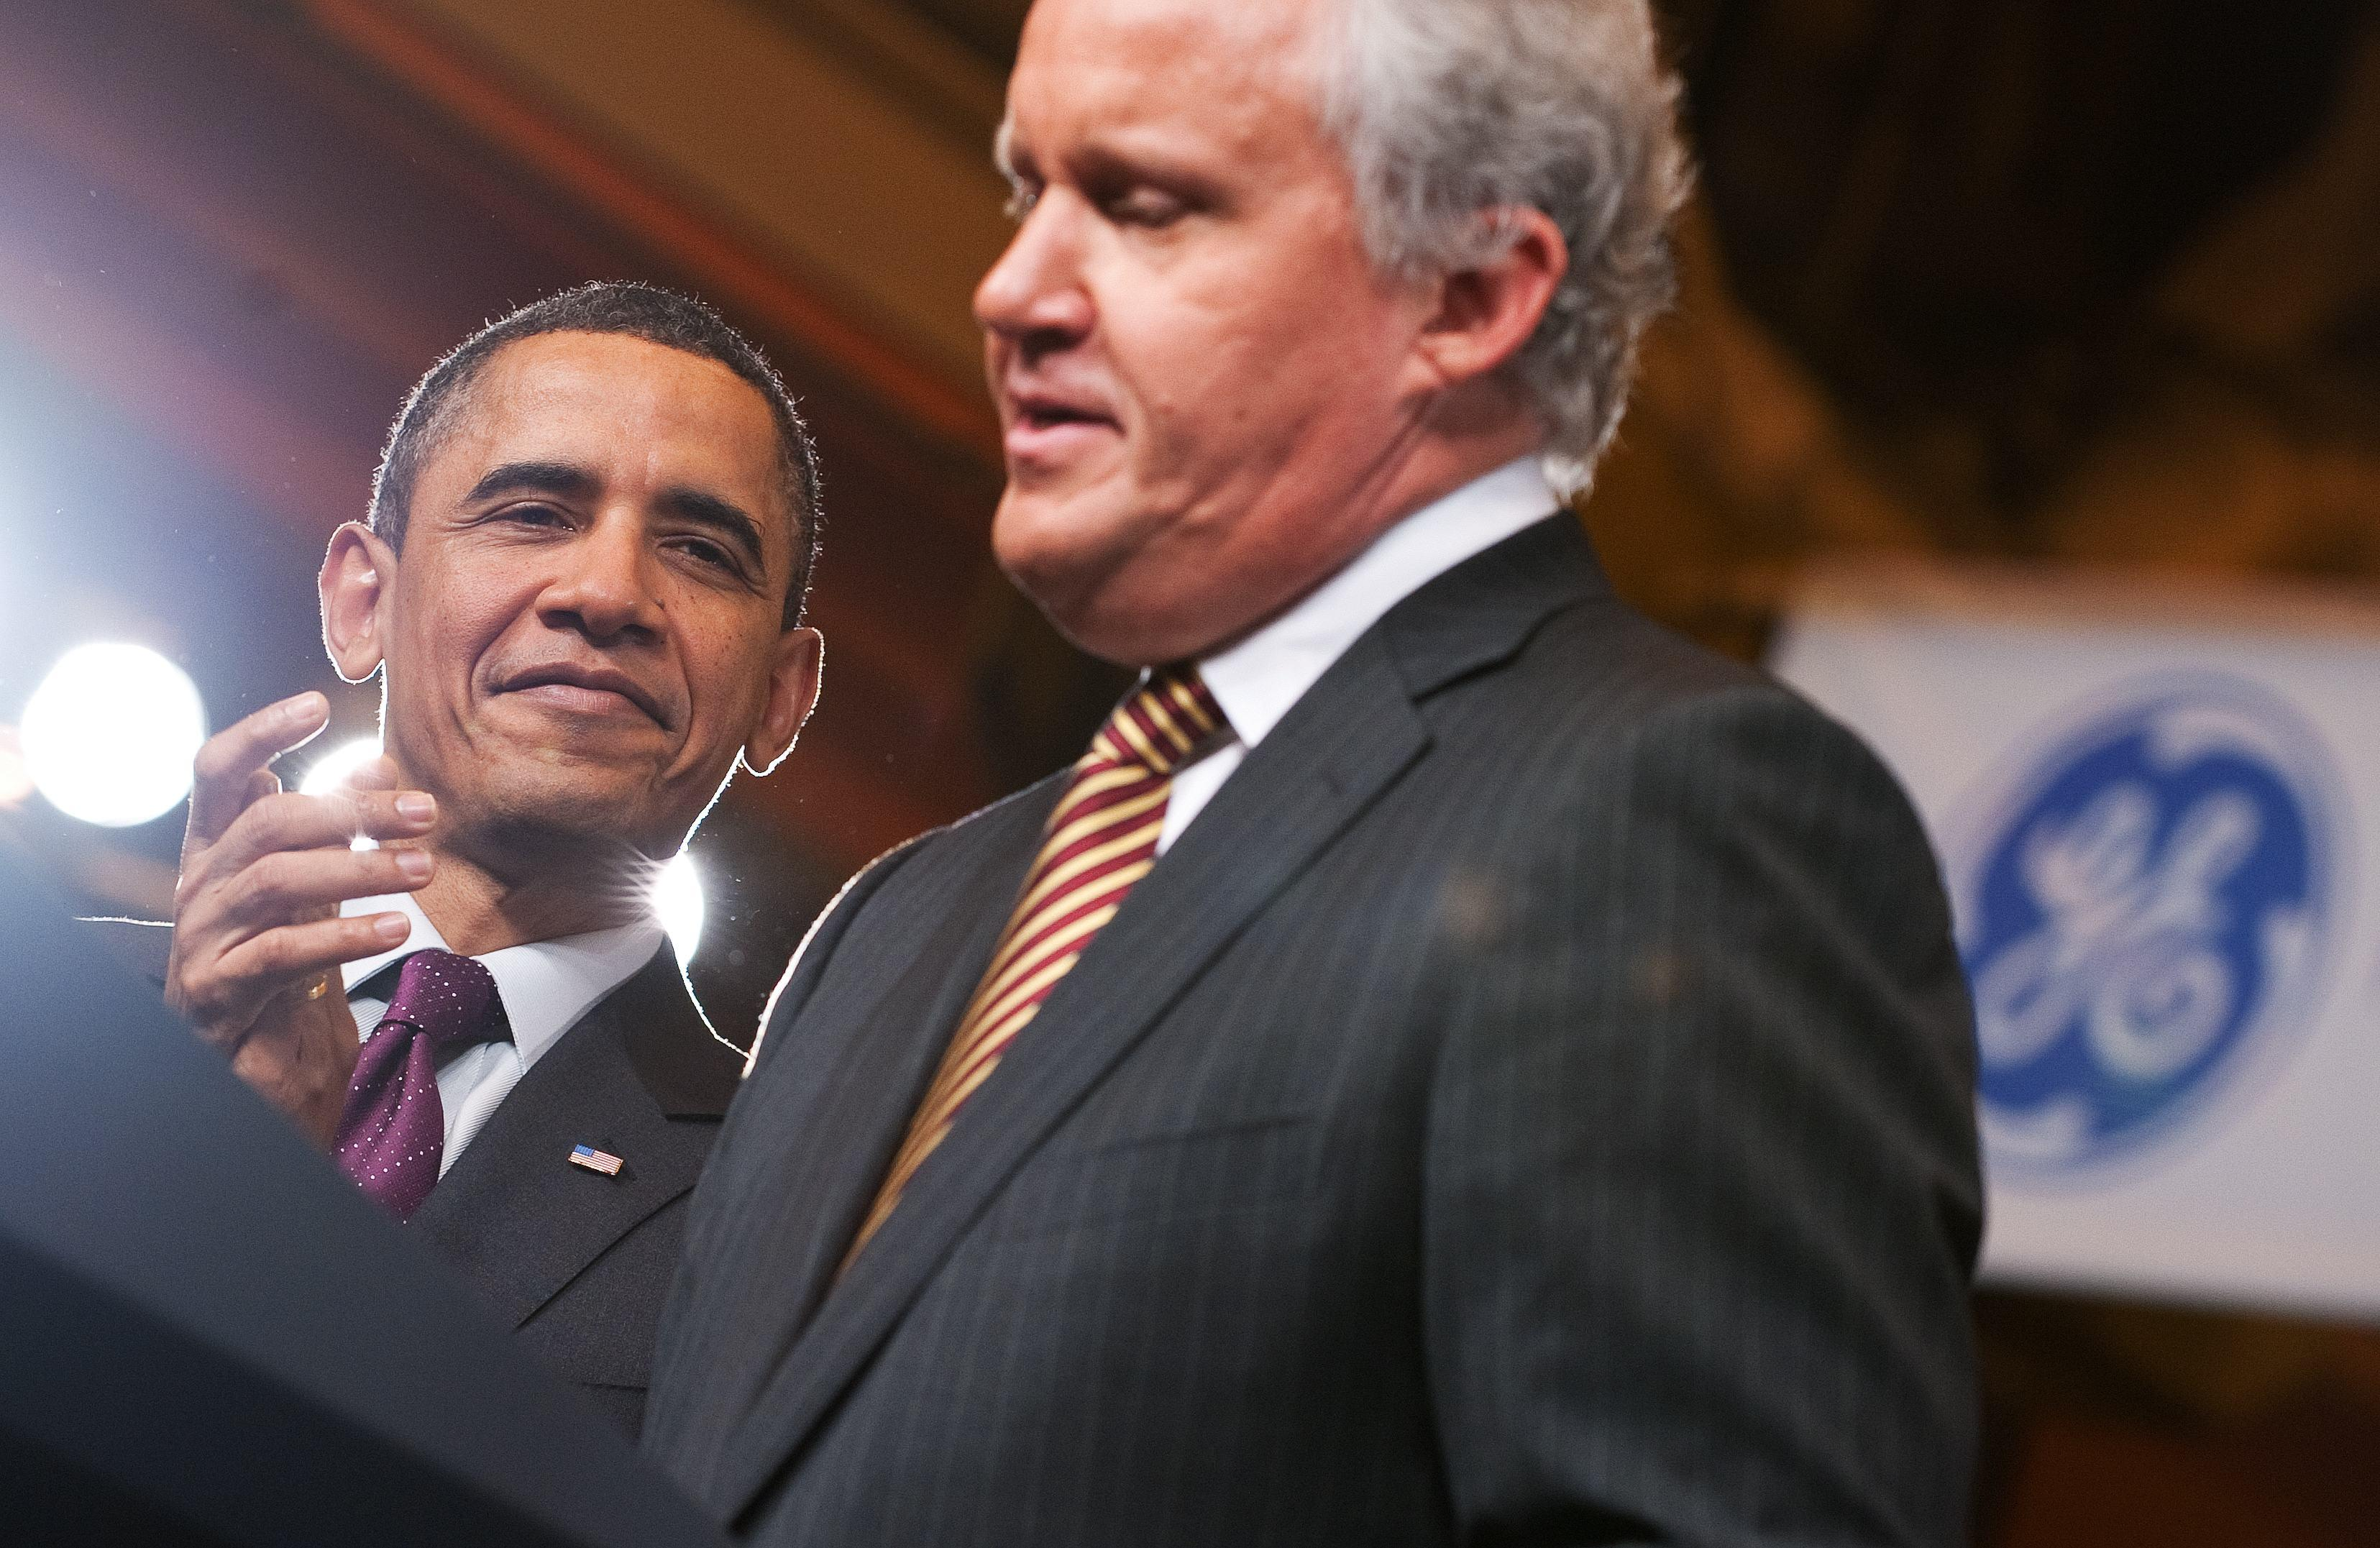 President Obama and GE's Jeff Immelt